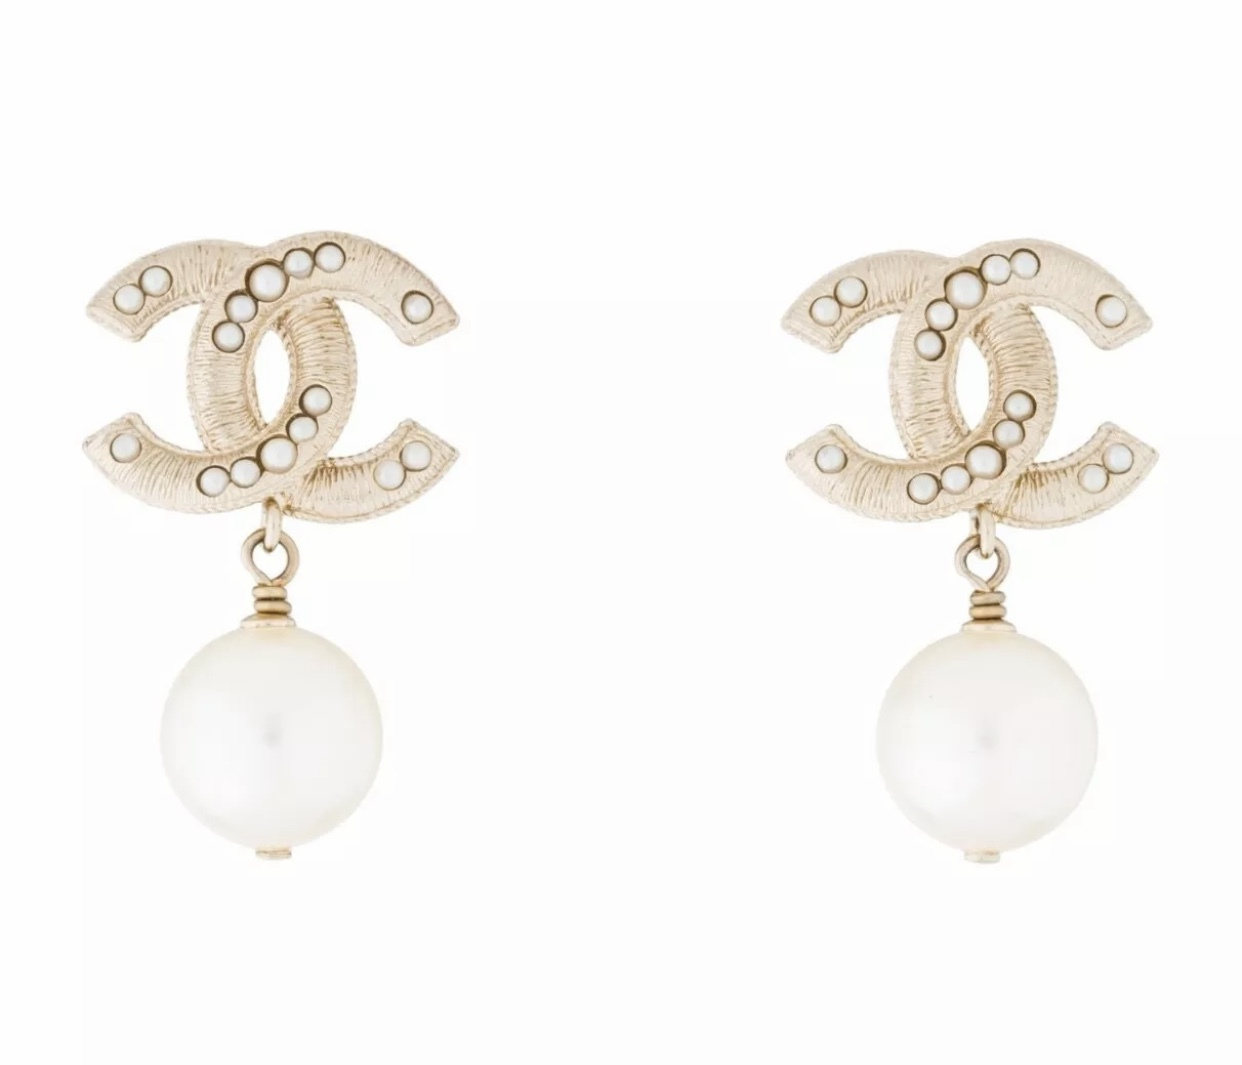 CLEARANCE CLOSEOUT Oval Heavy Sterling Silver Vintage Stud Pearl Dangle Earrings Handmade Vintage Jewelry Simple Classic Western